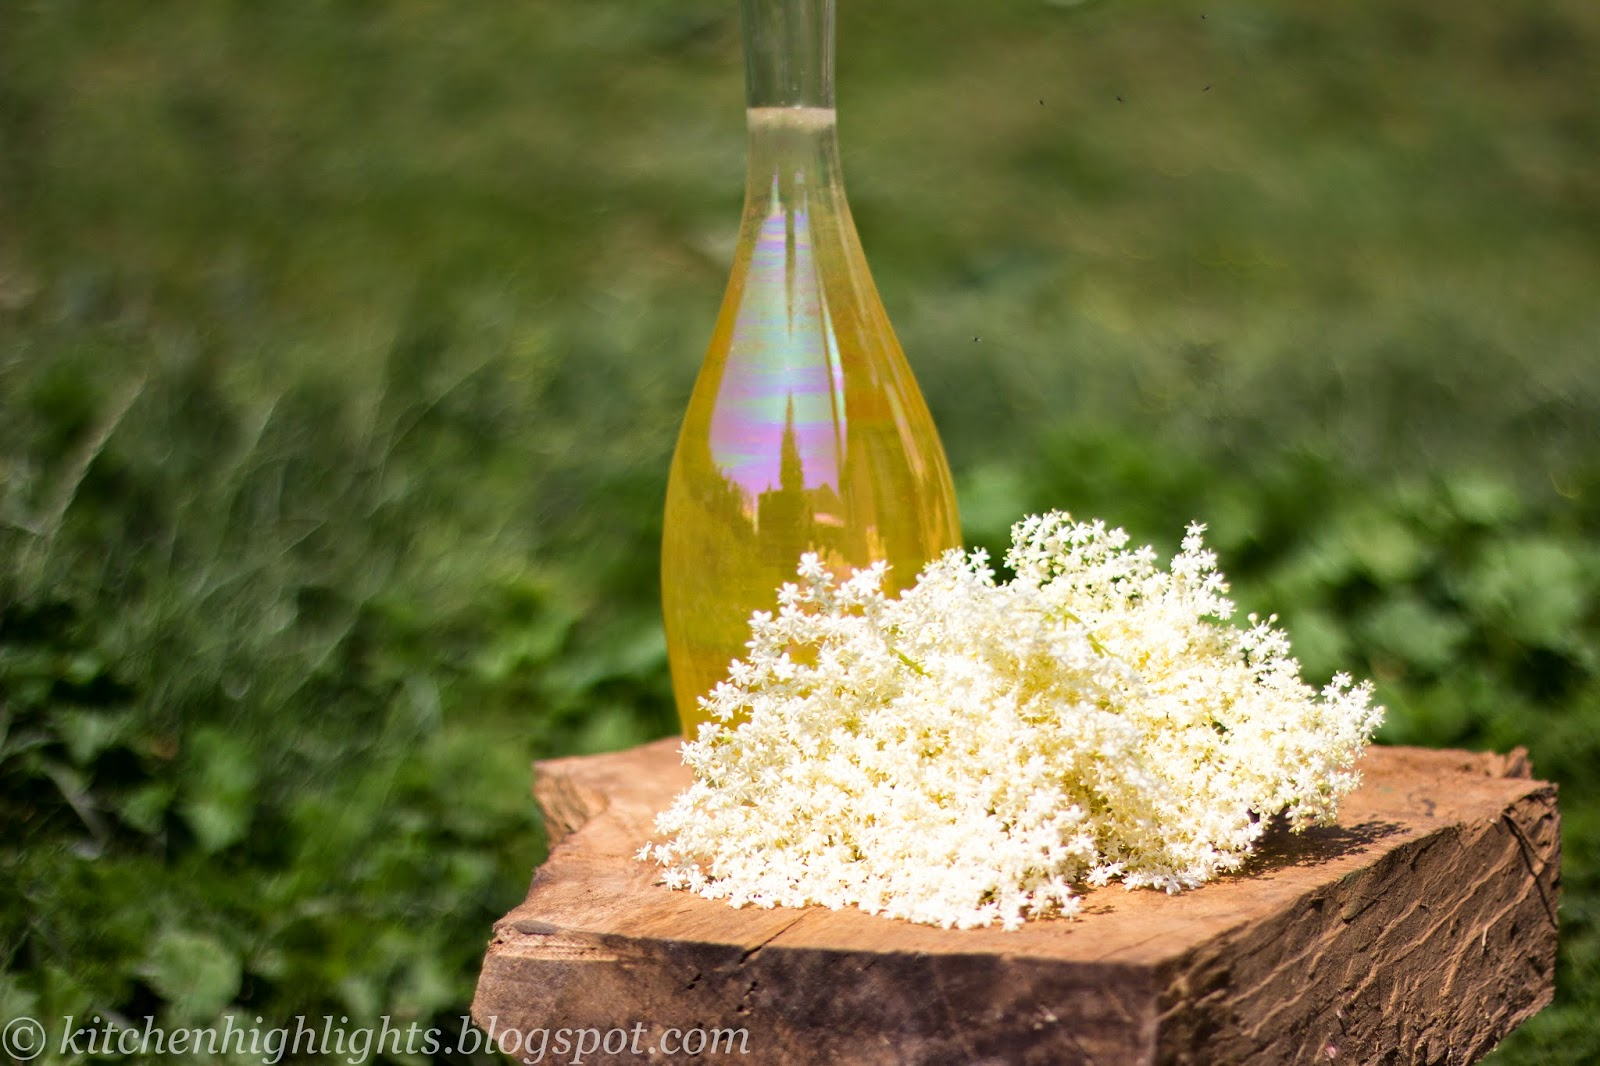 Fragrant and refreshing, elderflower cordial is excellent for summer